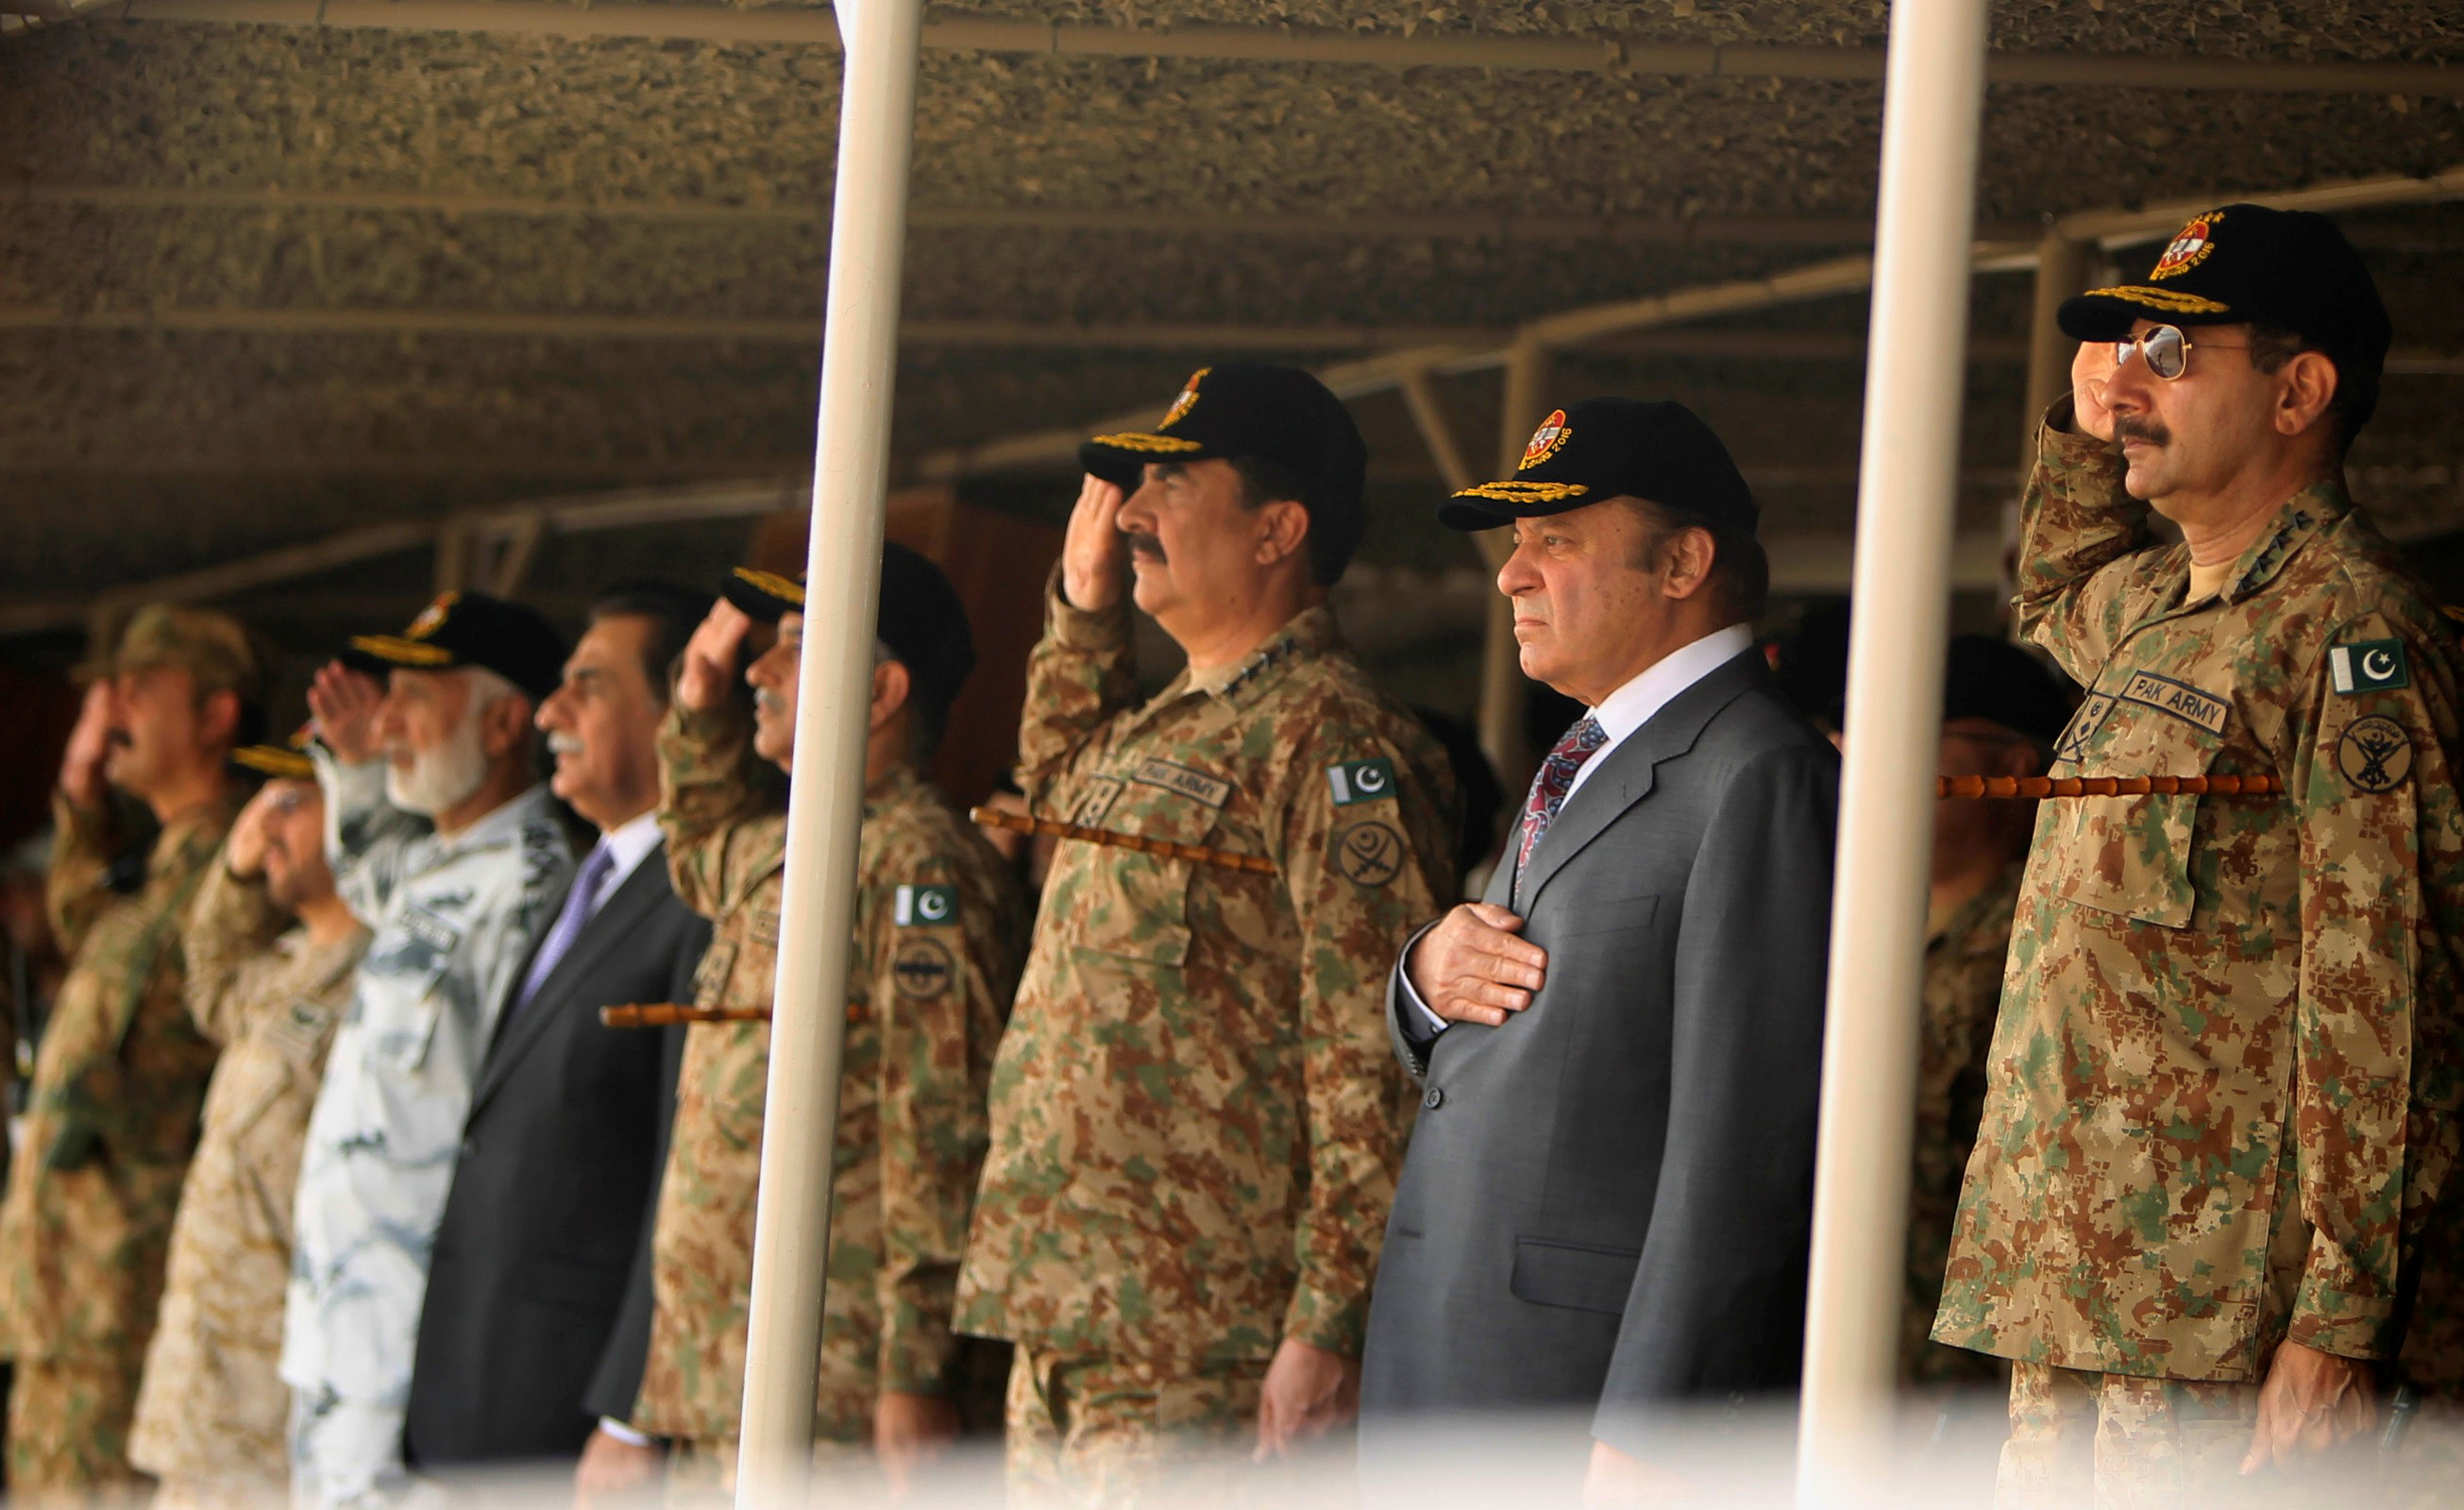 Pakistan's Prime Minister Nawaz Sharif and Army Chief of Staff General Raheel Sharif watch military exercises in Bahawalpure, Pakistan, November 16, 2016. REUTERS/Stringer